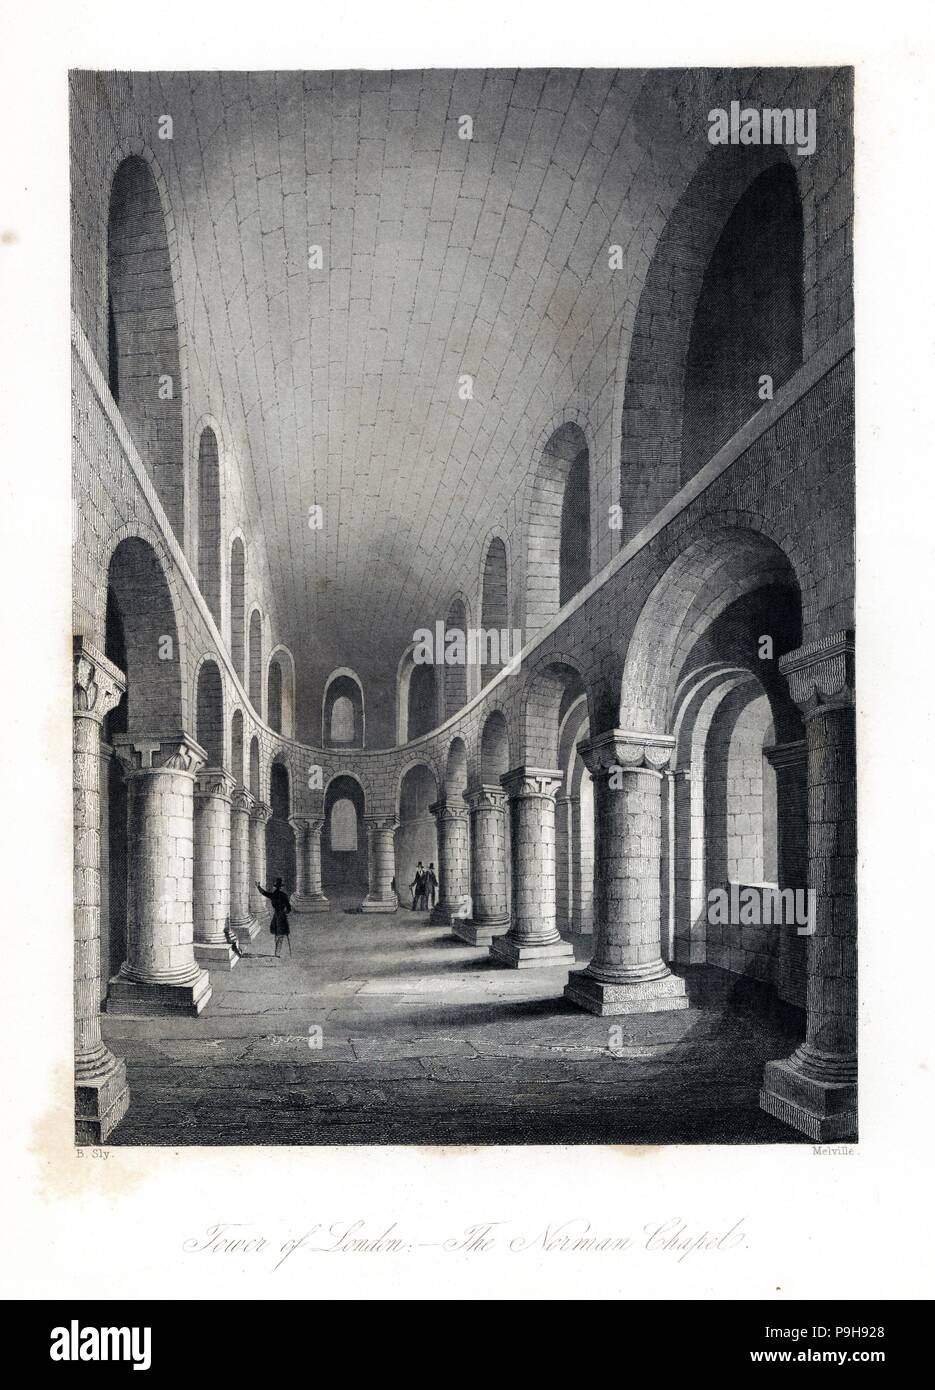 The Norman Chapel of St. John the Evangelist or Caesar's Chapel in the White Tower or Keep of the Tower of London. Steel engraving by Henry Melville after an illustration by B. Sly from London Interiors, Their Costumes and Ceremonies, Joshua Mead, London, 1841. - Stock Image